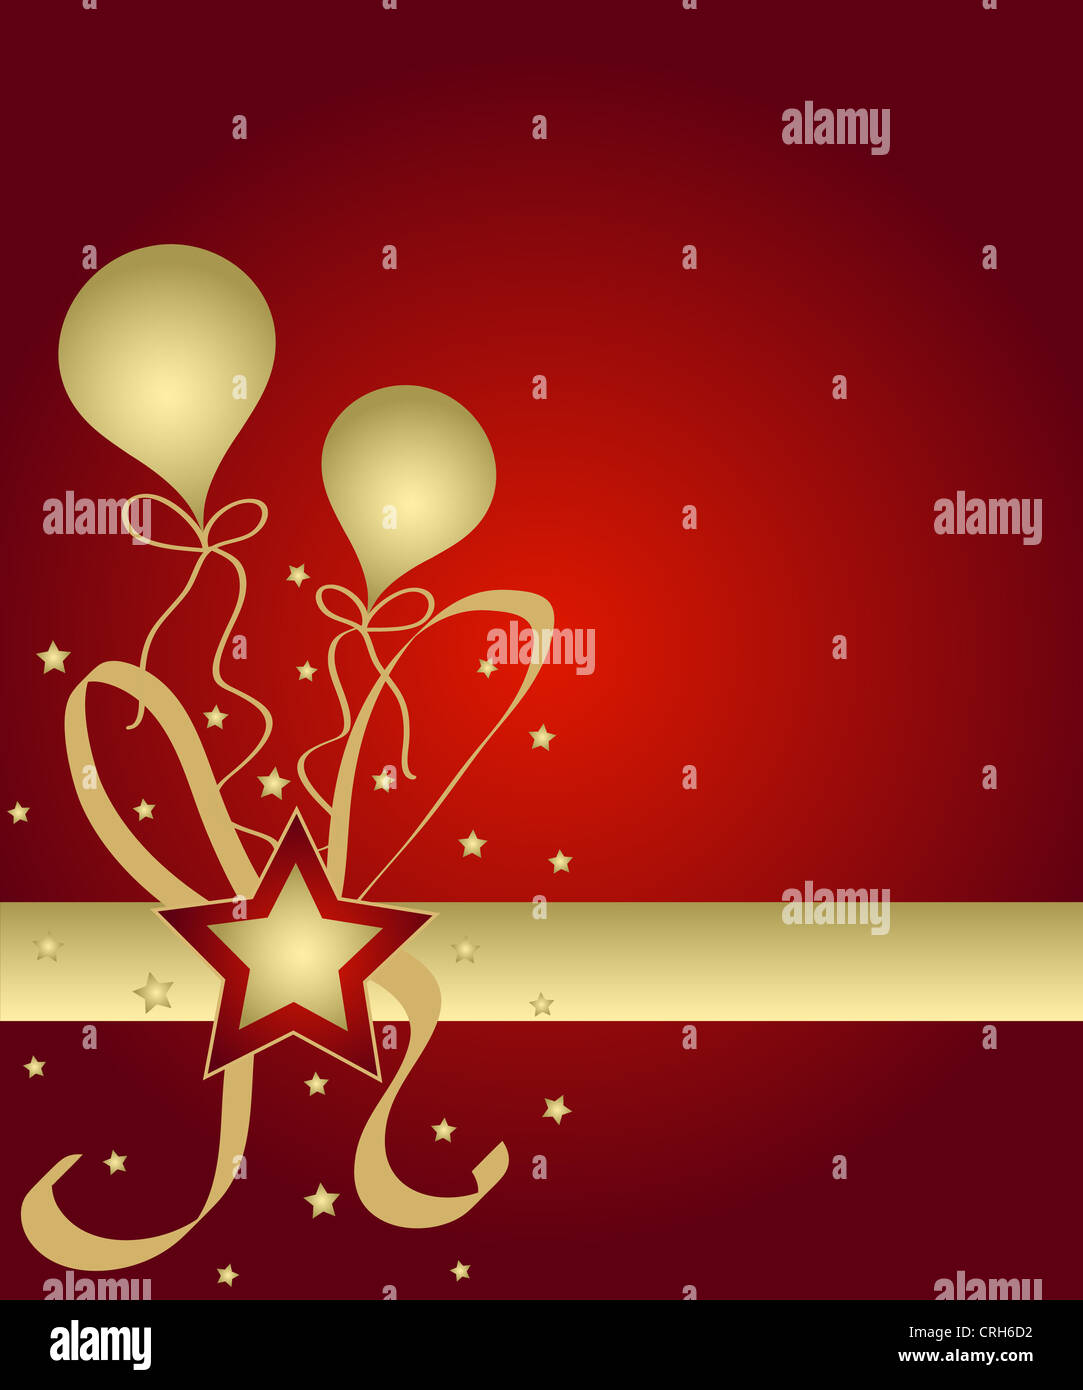 Stars and balloons in red and gold Stock Photo